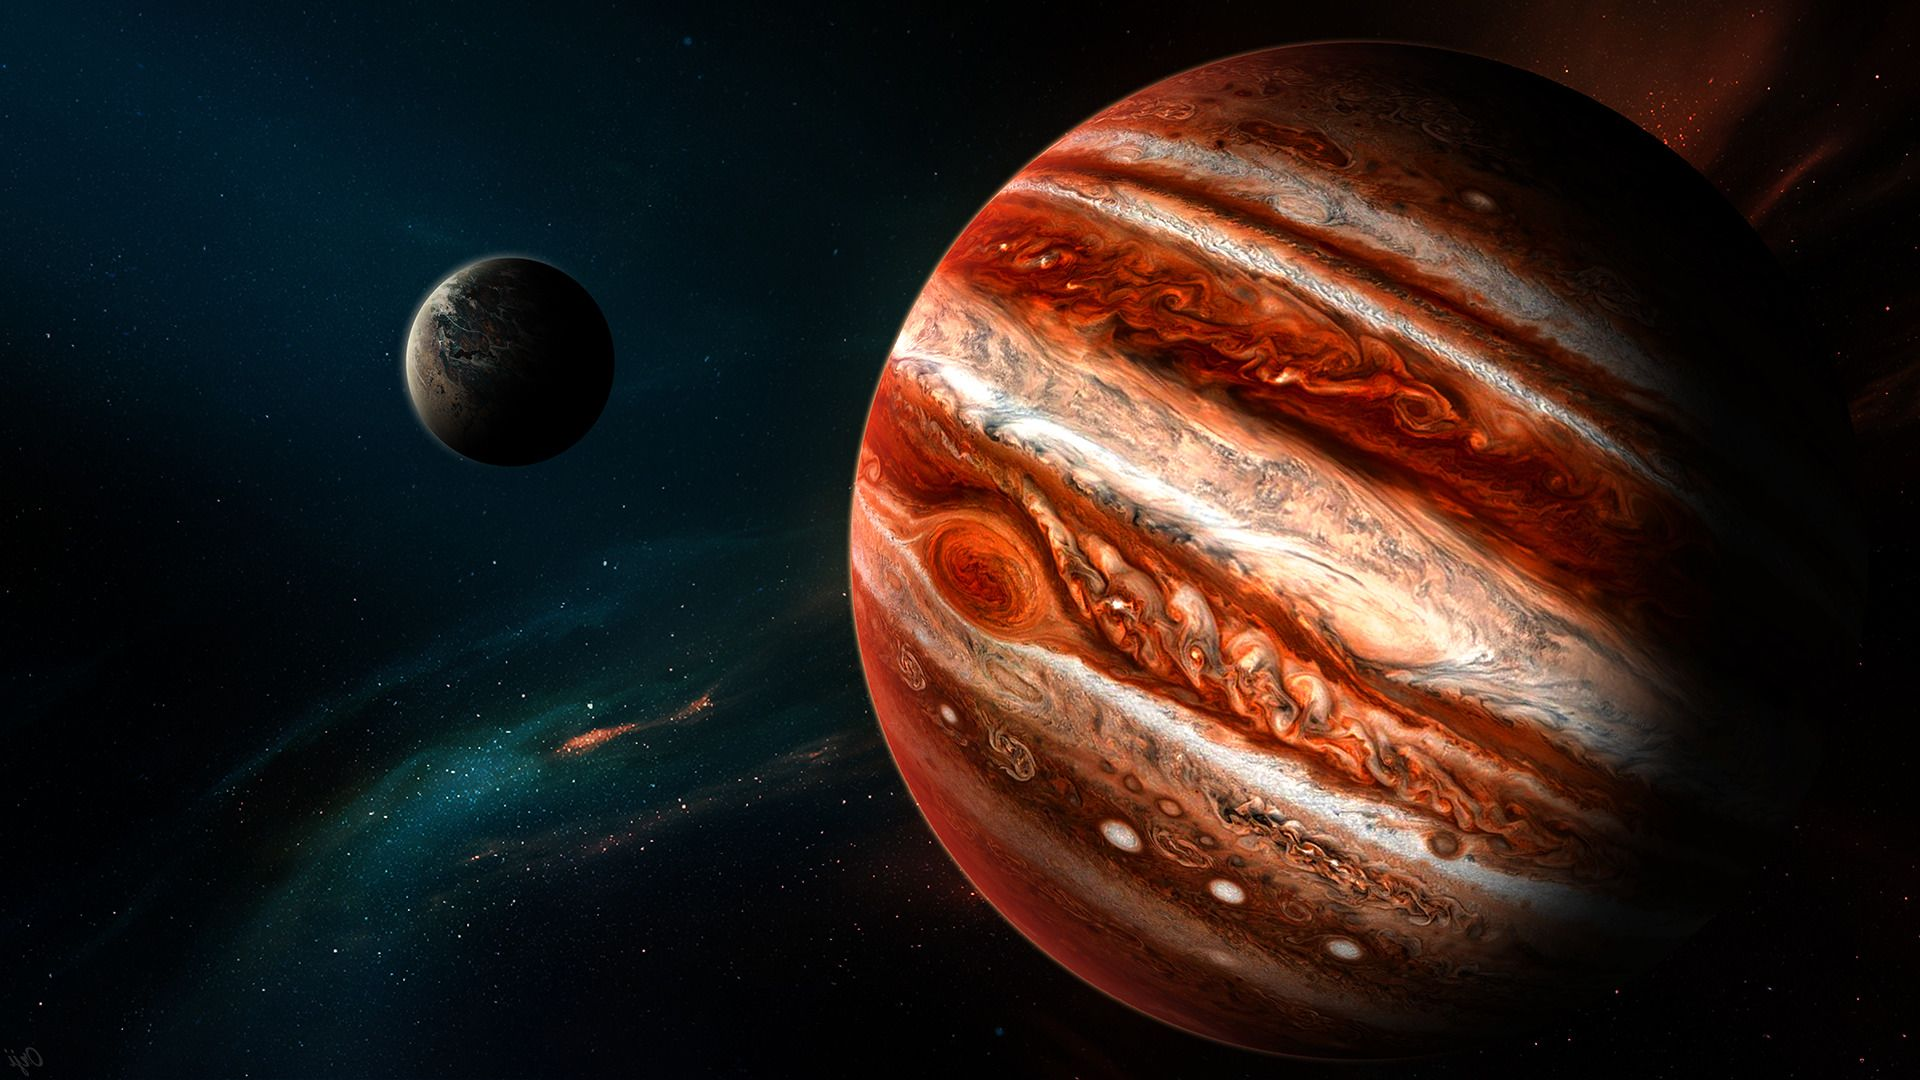 1920x1080 fantasy art space planet jupiter space art wallpaper and background